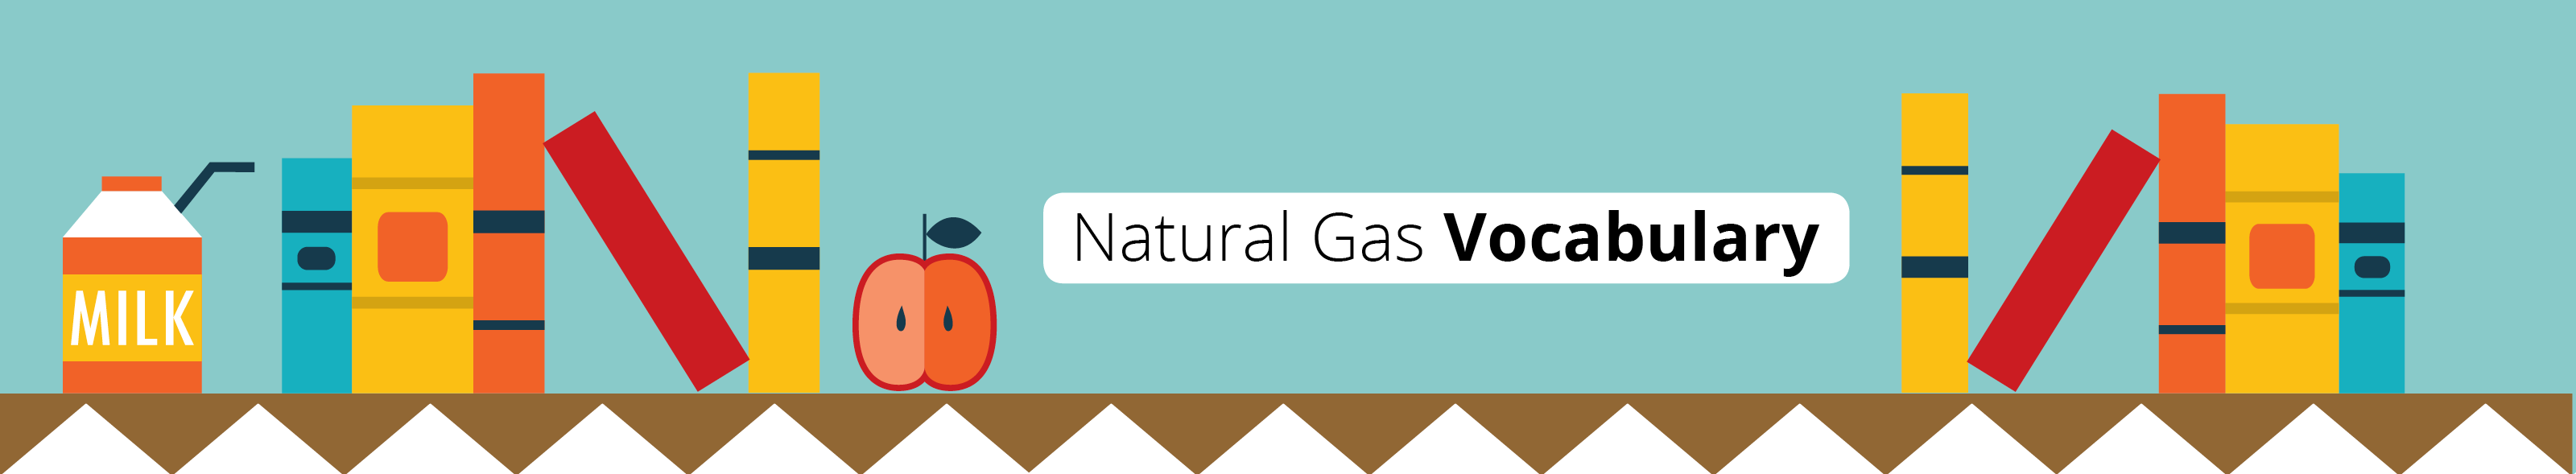 Natural Gas Vocabulary